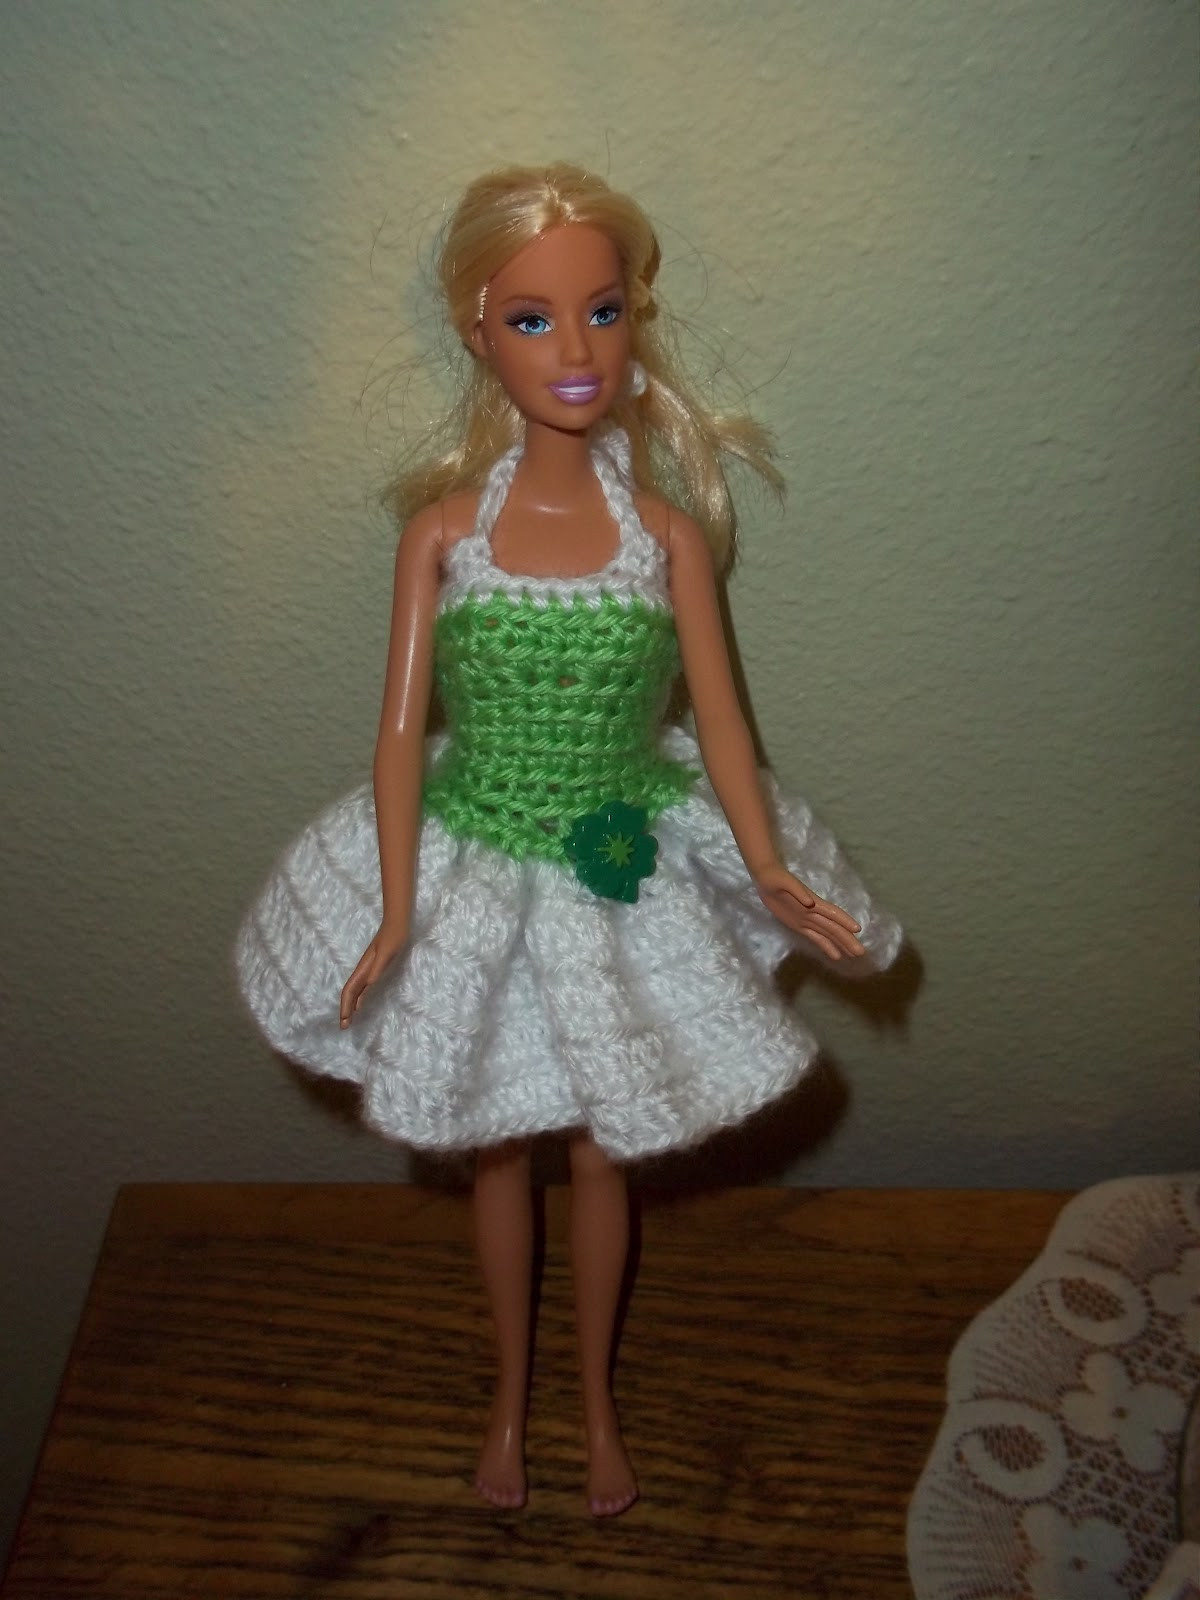 Best Of My Turn for Us Free Barbie St Paddy S Dress Pattern Crochet Barbie Clothes Of Marvelous 46 Photos Crochet Barbie Clothes